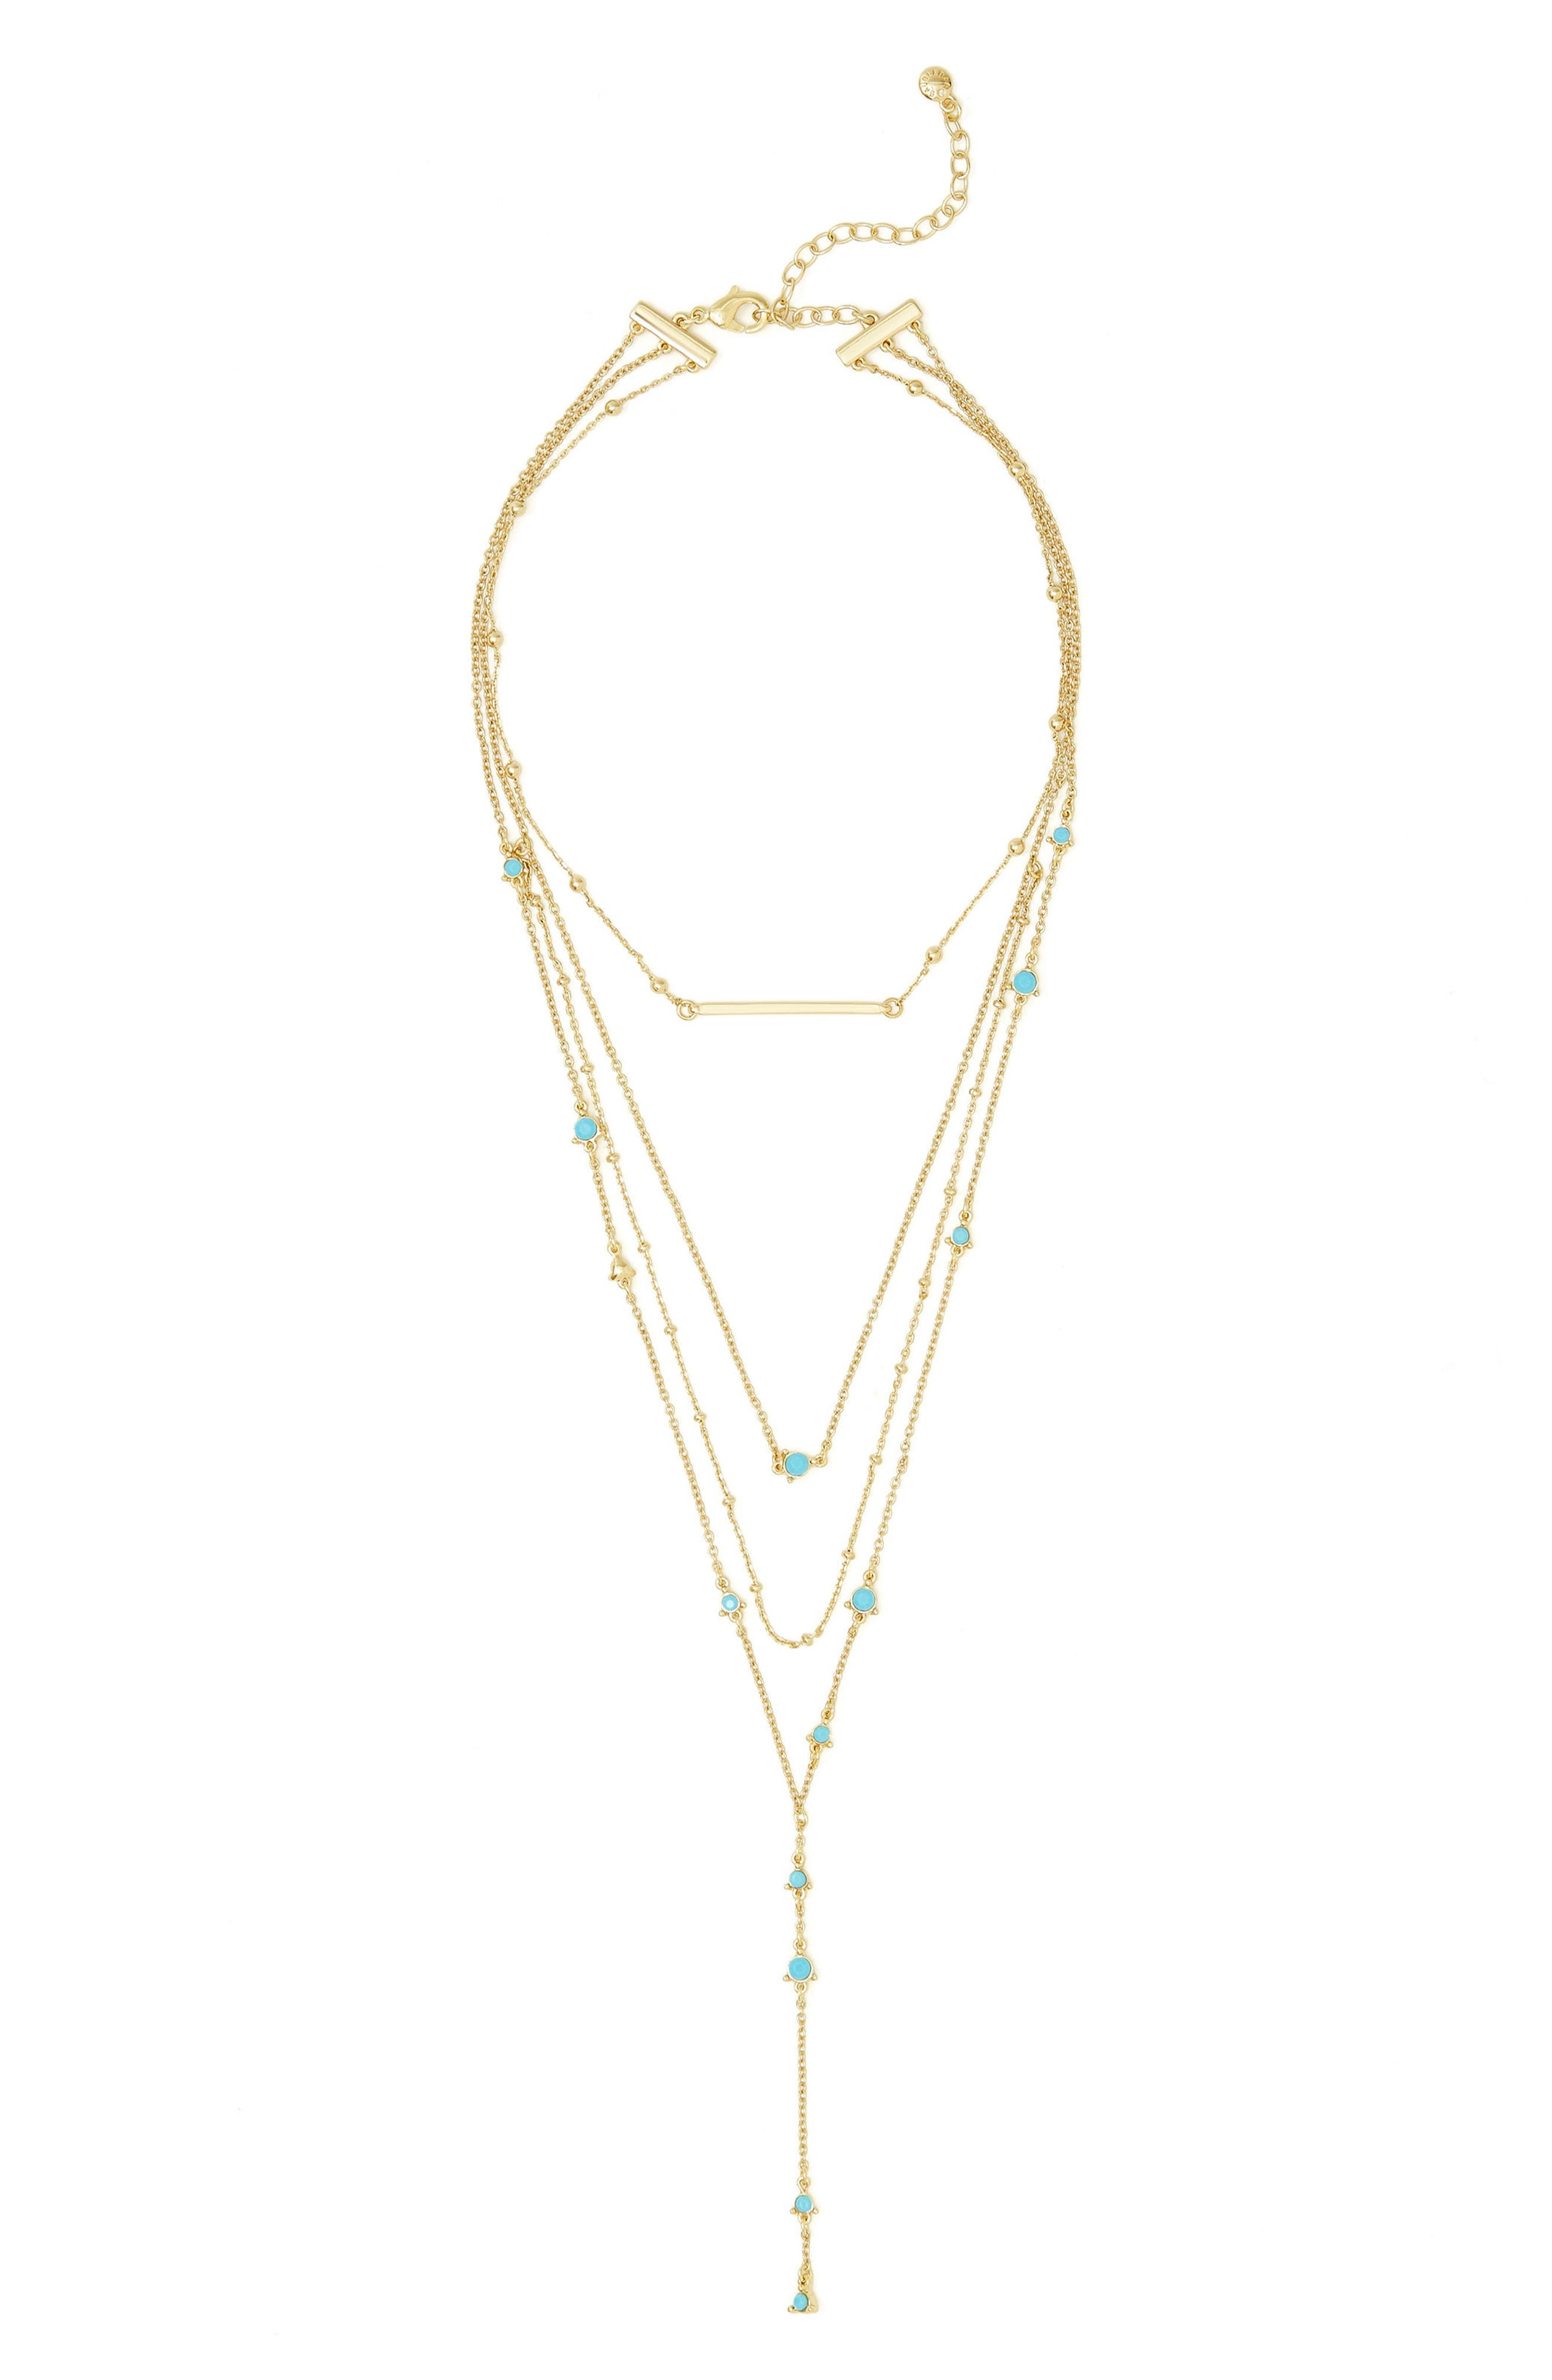 Harlow Layered Lariat Necklace,                         Main,                         color, Turquoise